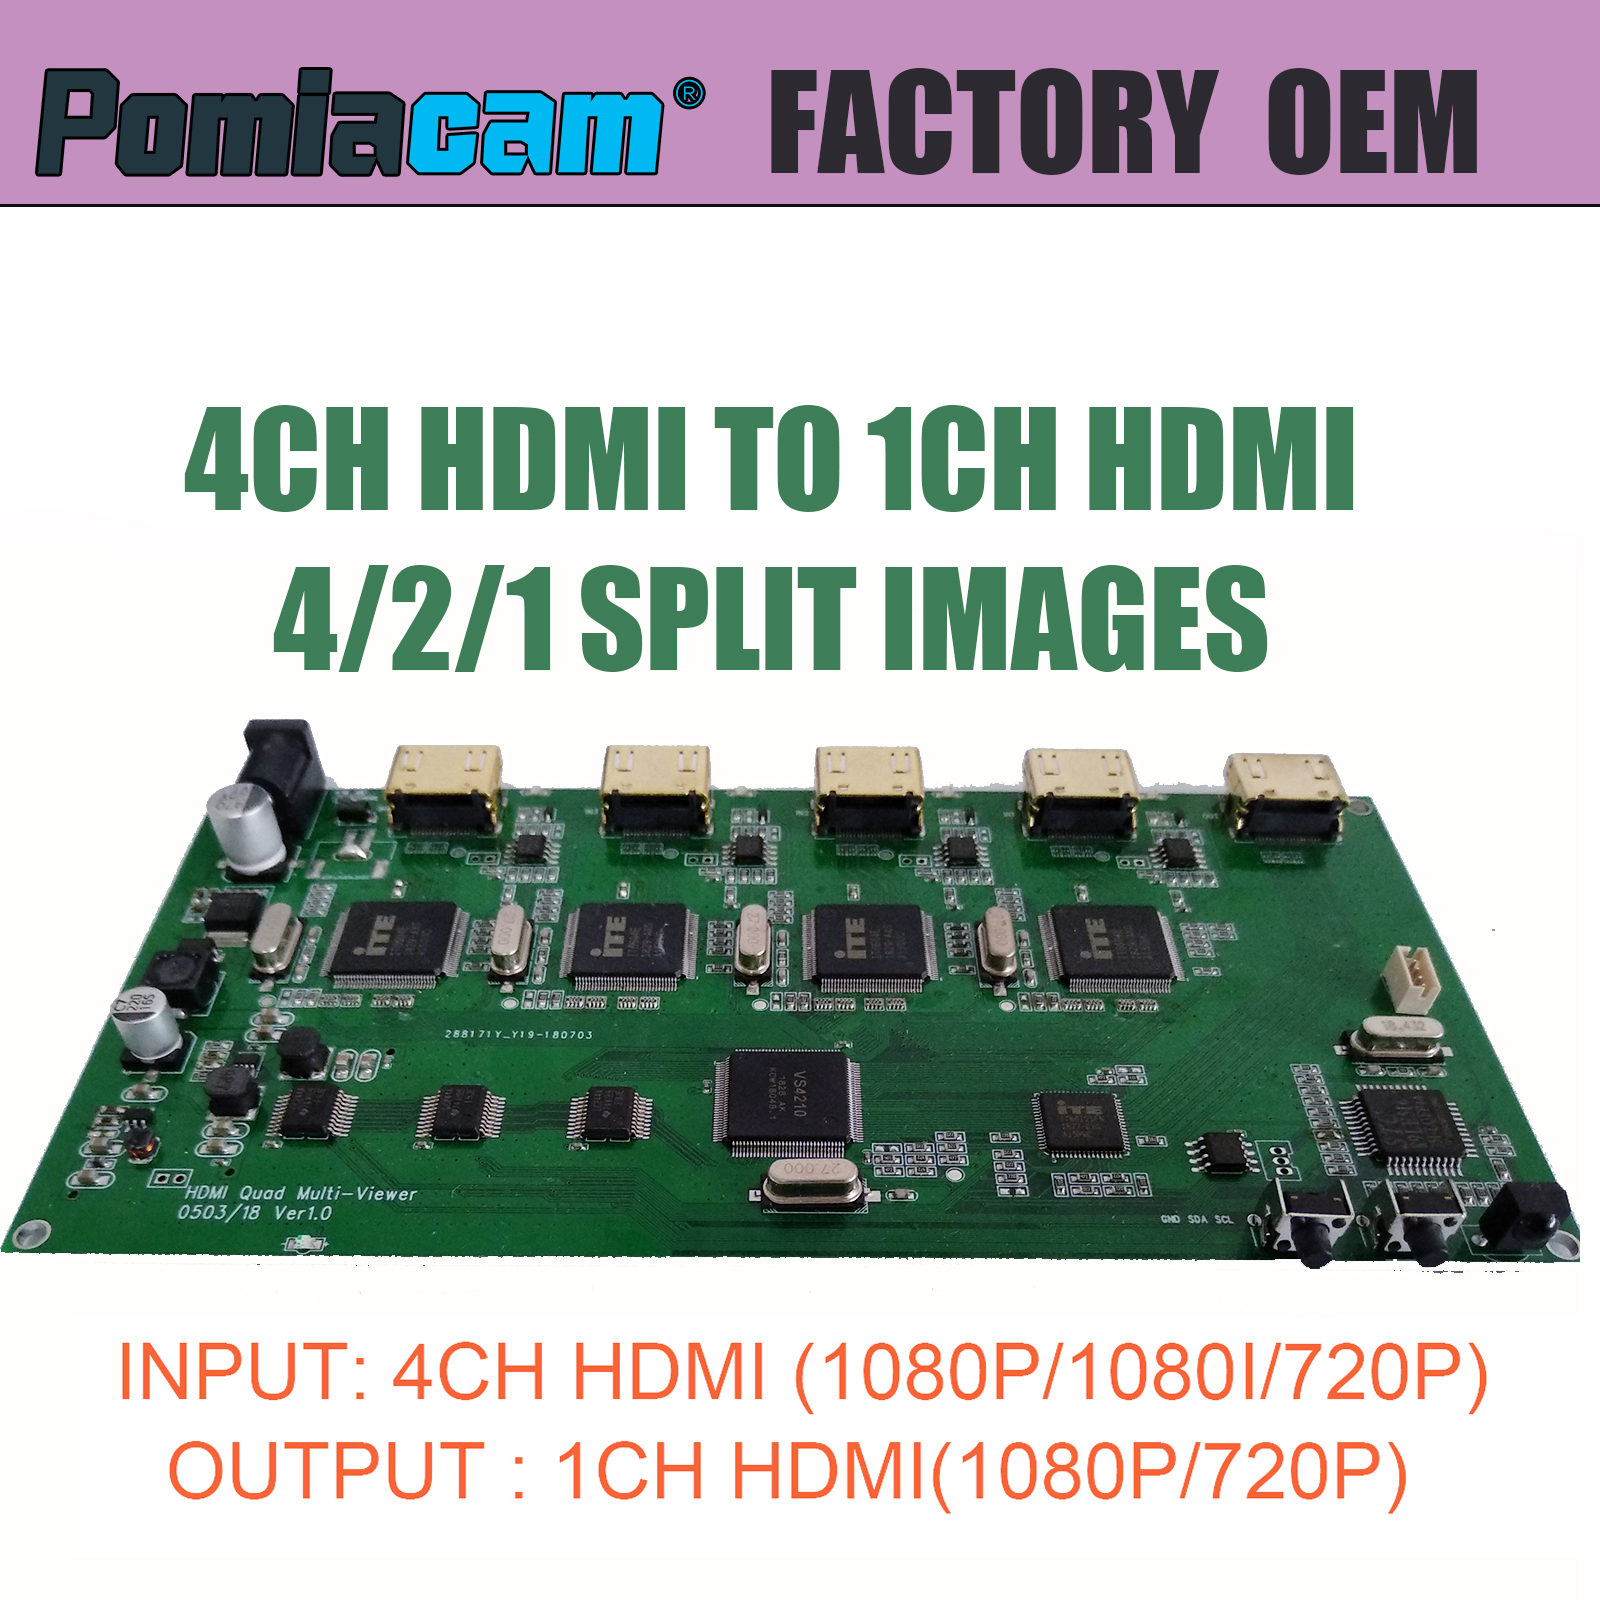 HD30 factory 4CH HDMI to 1CH HDMI video multiple split images converter ,4 split images in one screen , for computer game